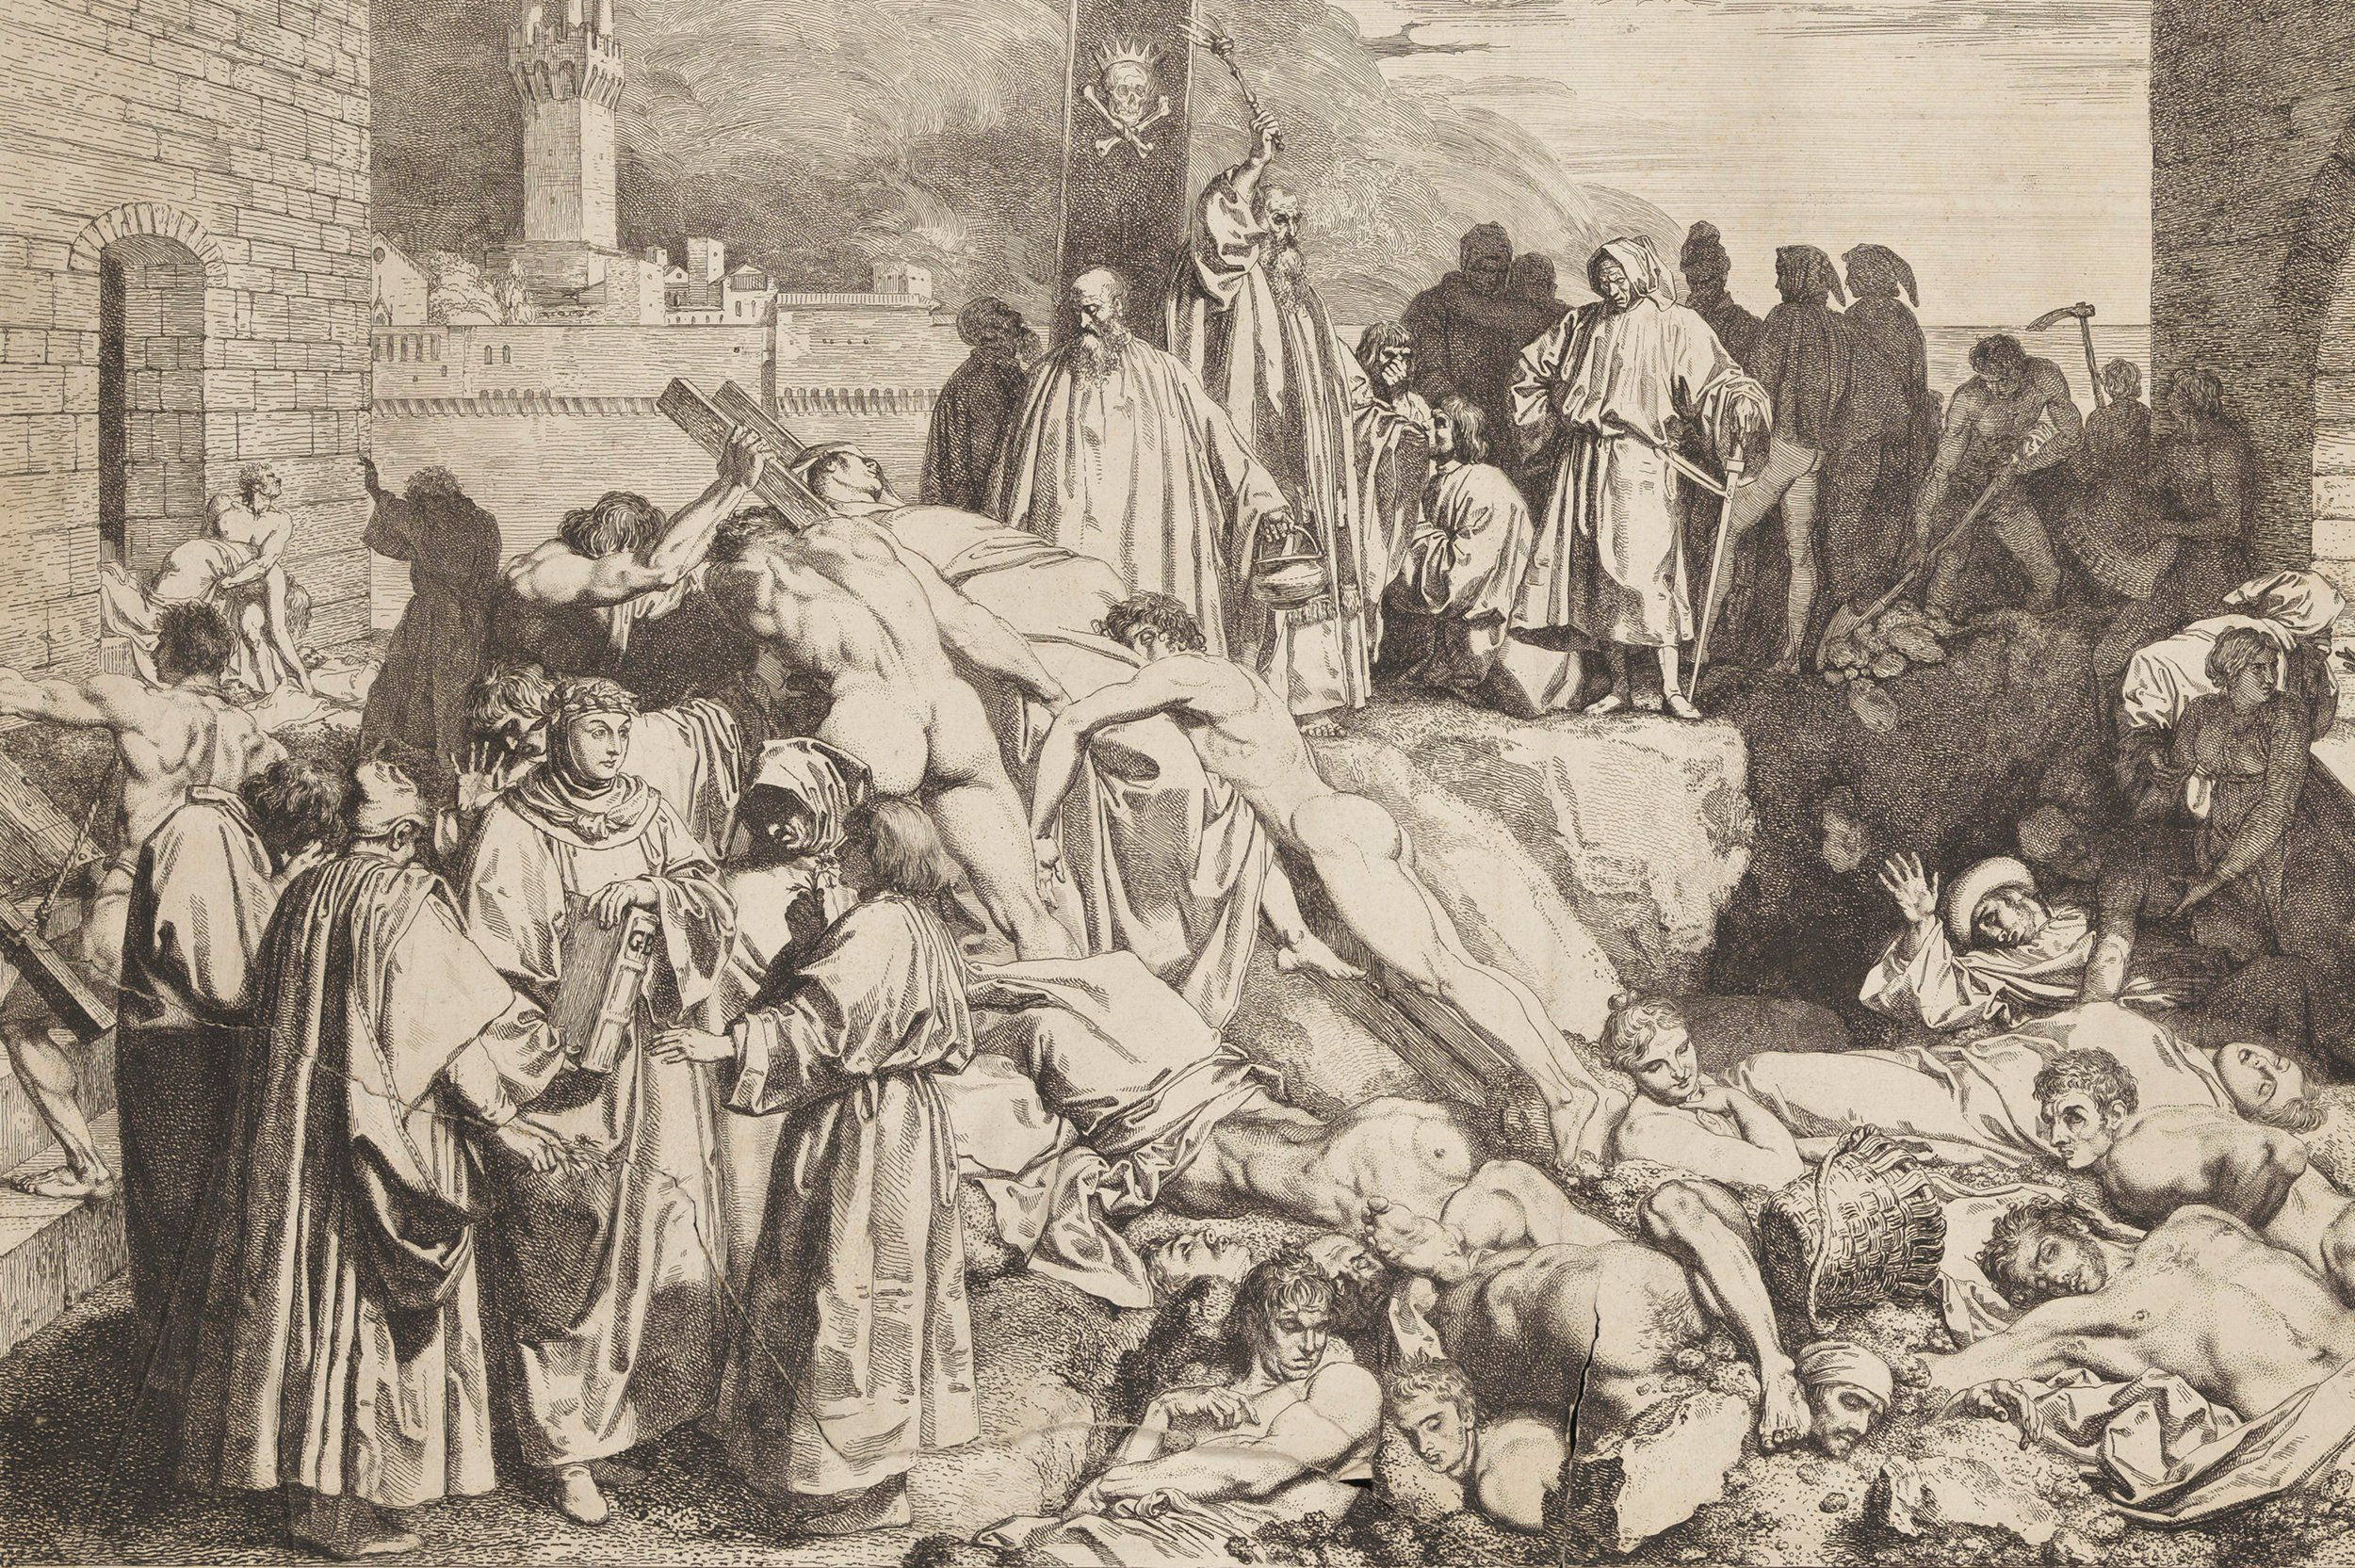 an analysis of the mid fourteenth century black death plague in europe